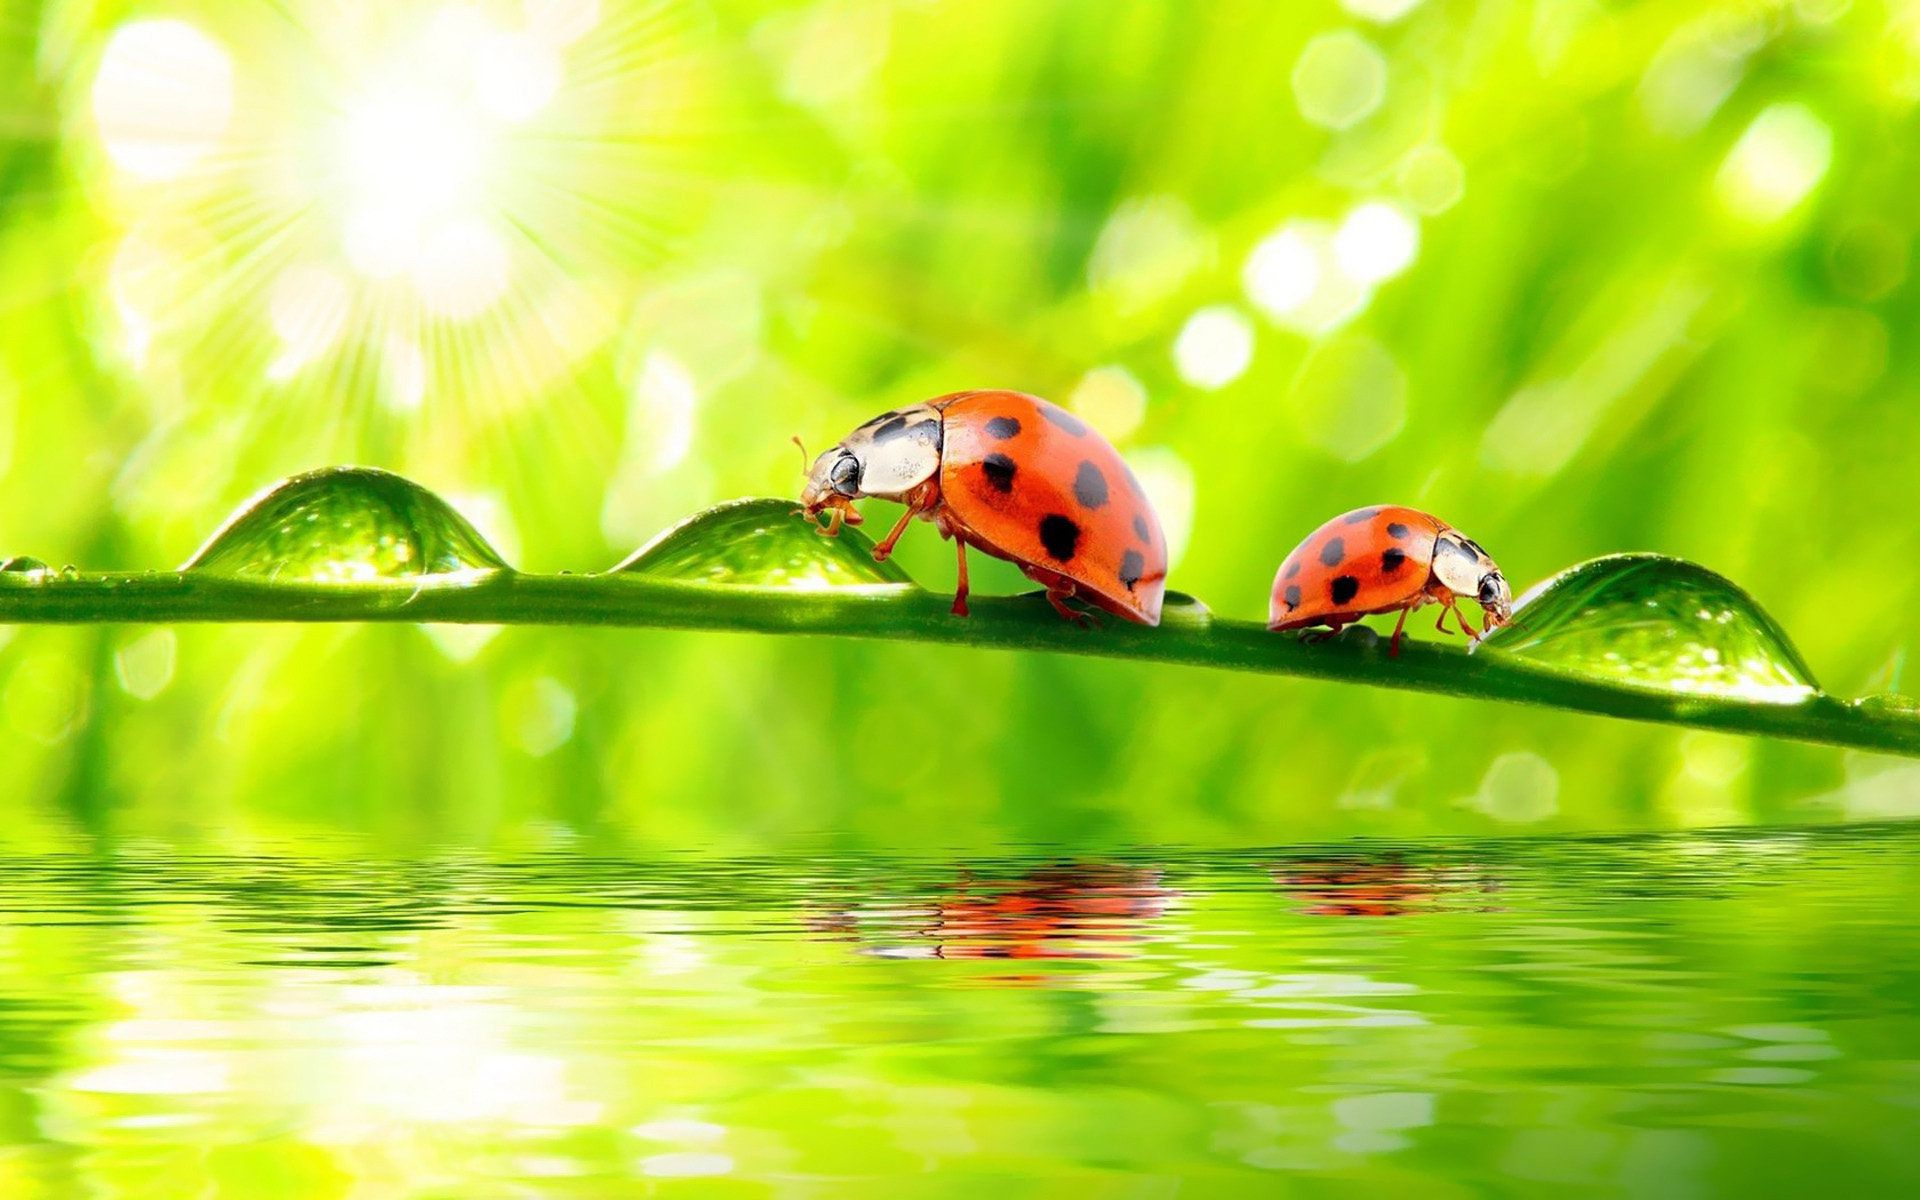 Water Drop Wallpaper For Iphone Ladybug Wallpapers Pictures Images